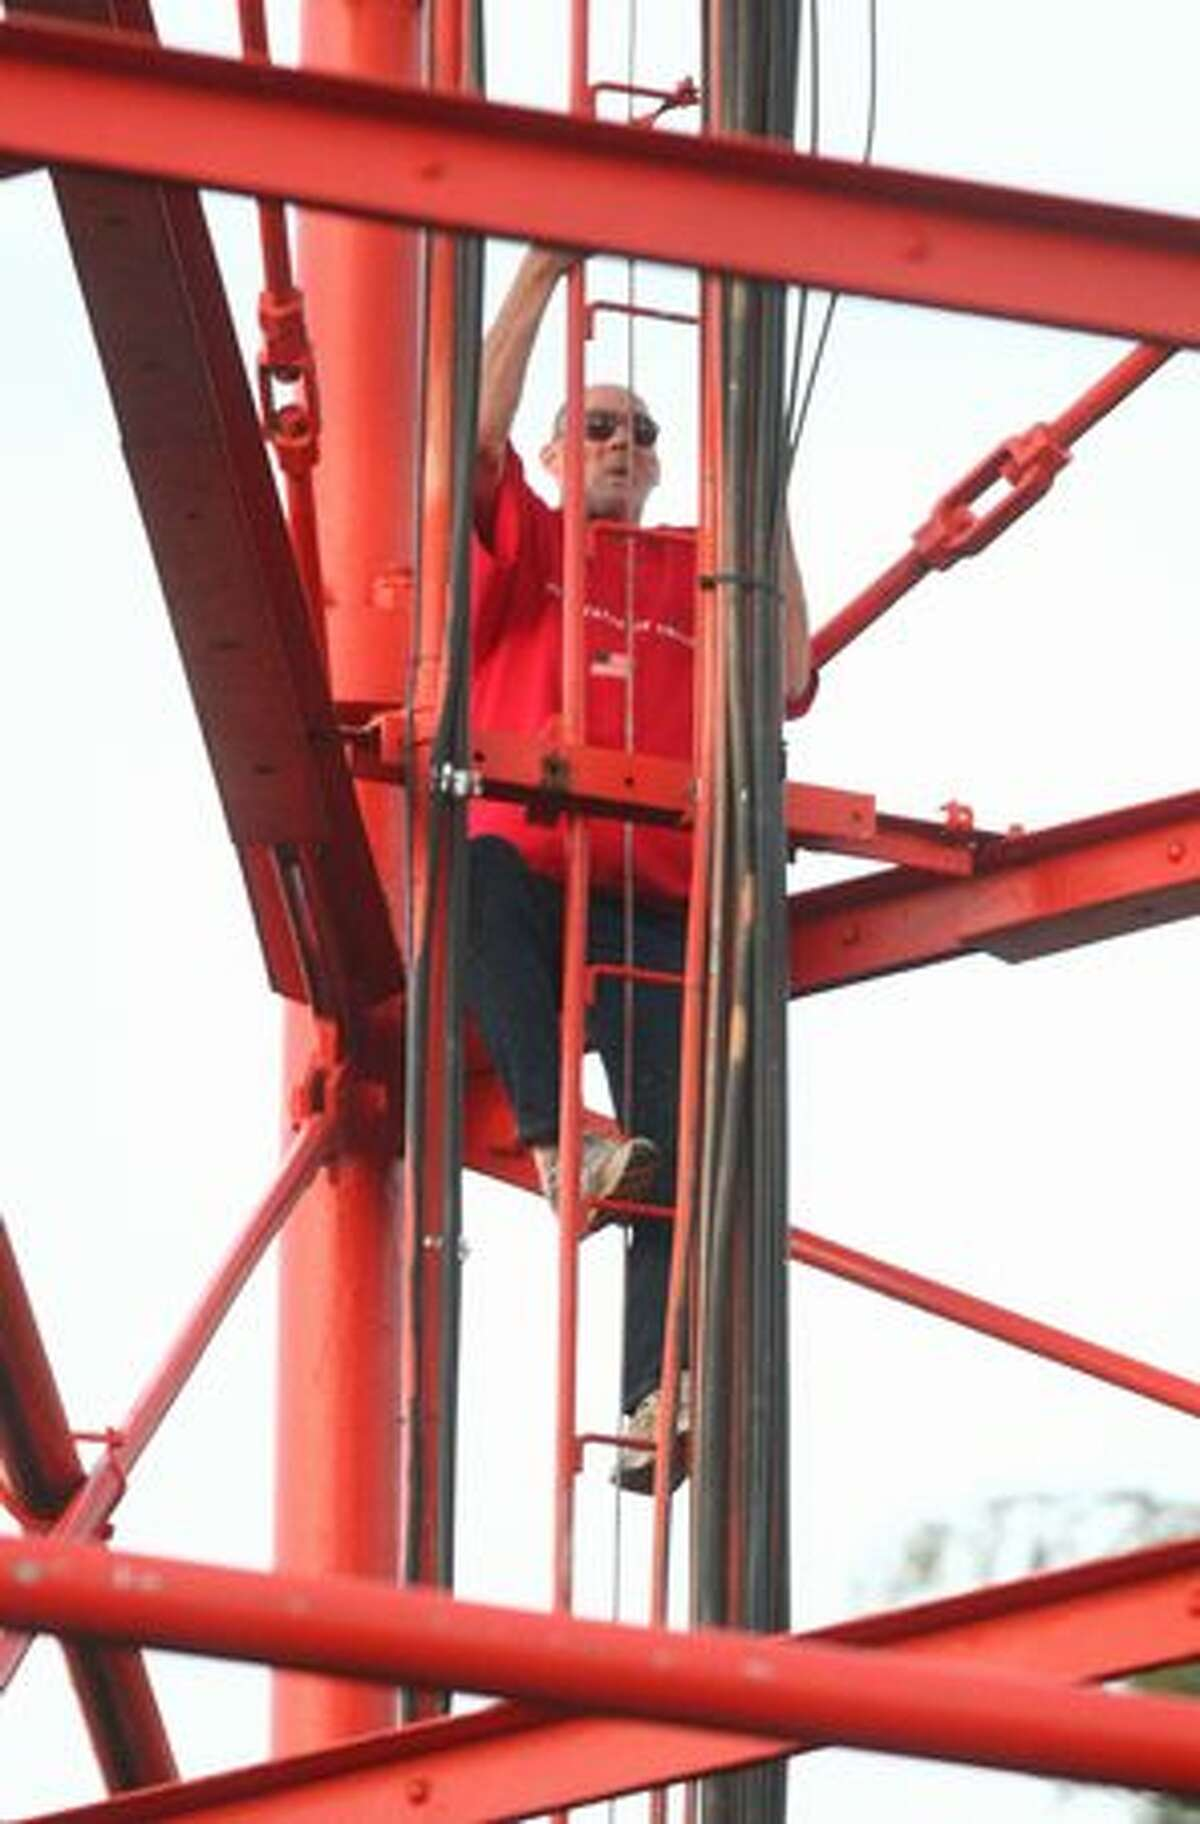 An unidentified man climbs down from the top of the KIRO/7 Television tower on Seattle's Queen Anne hill.